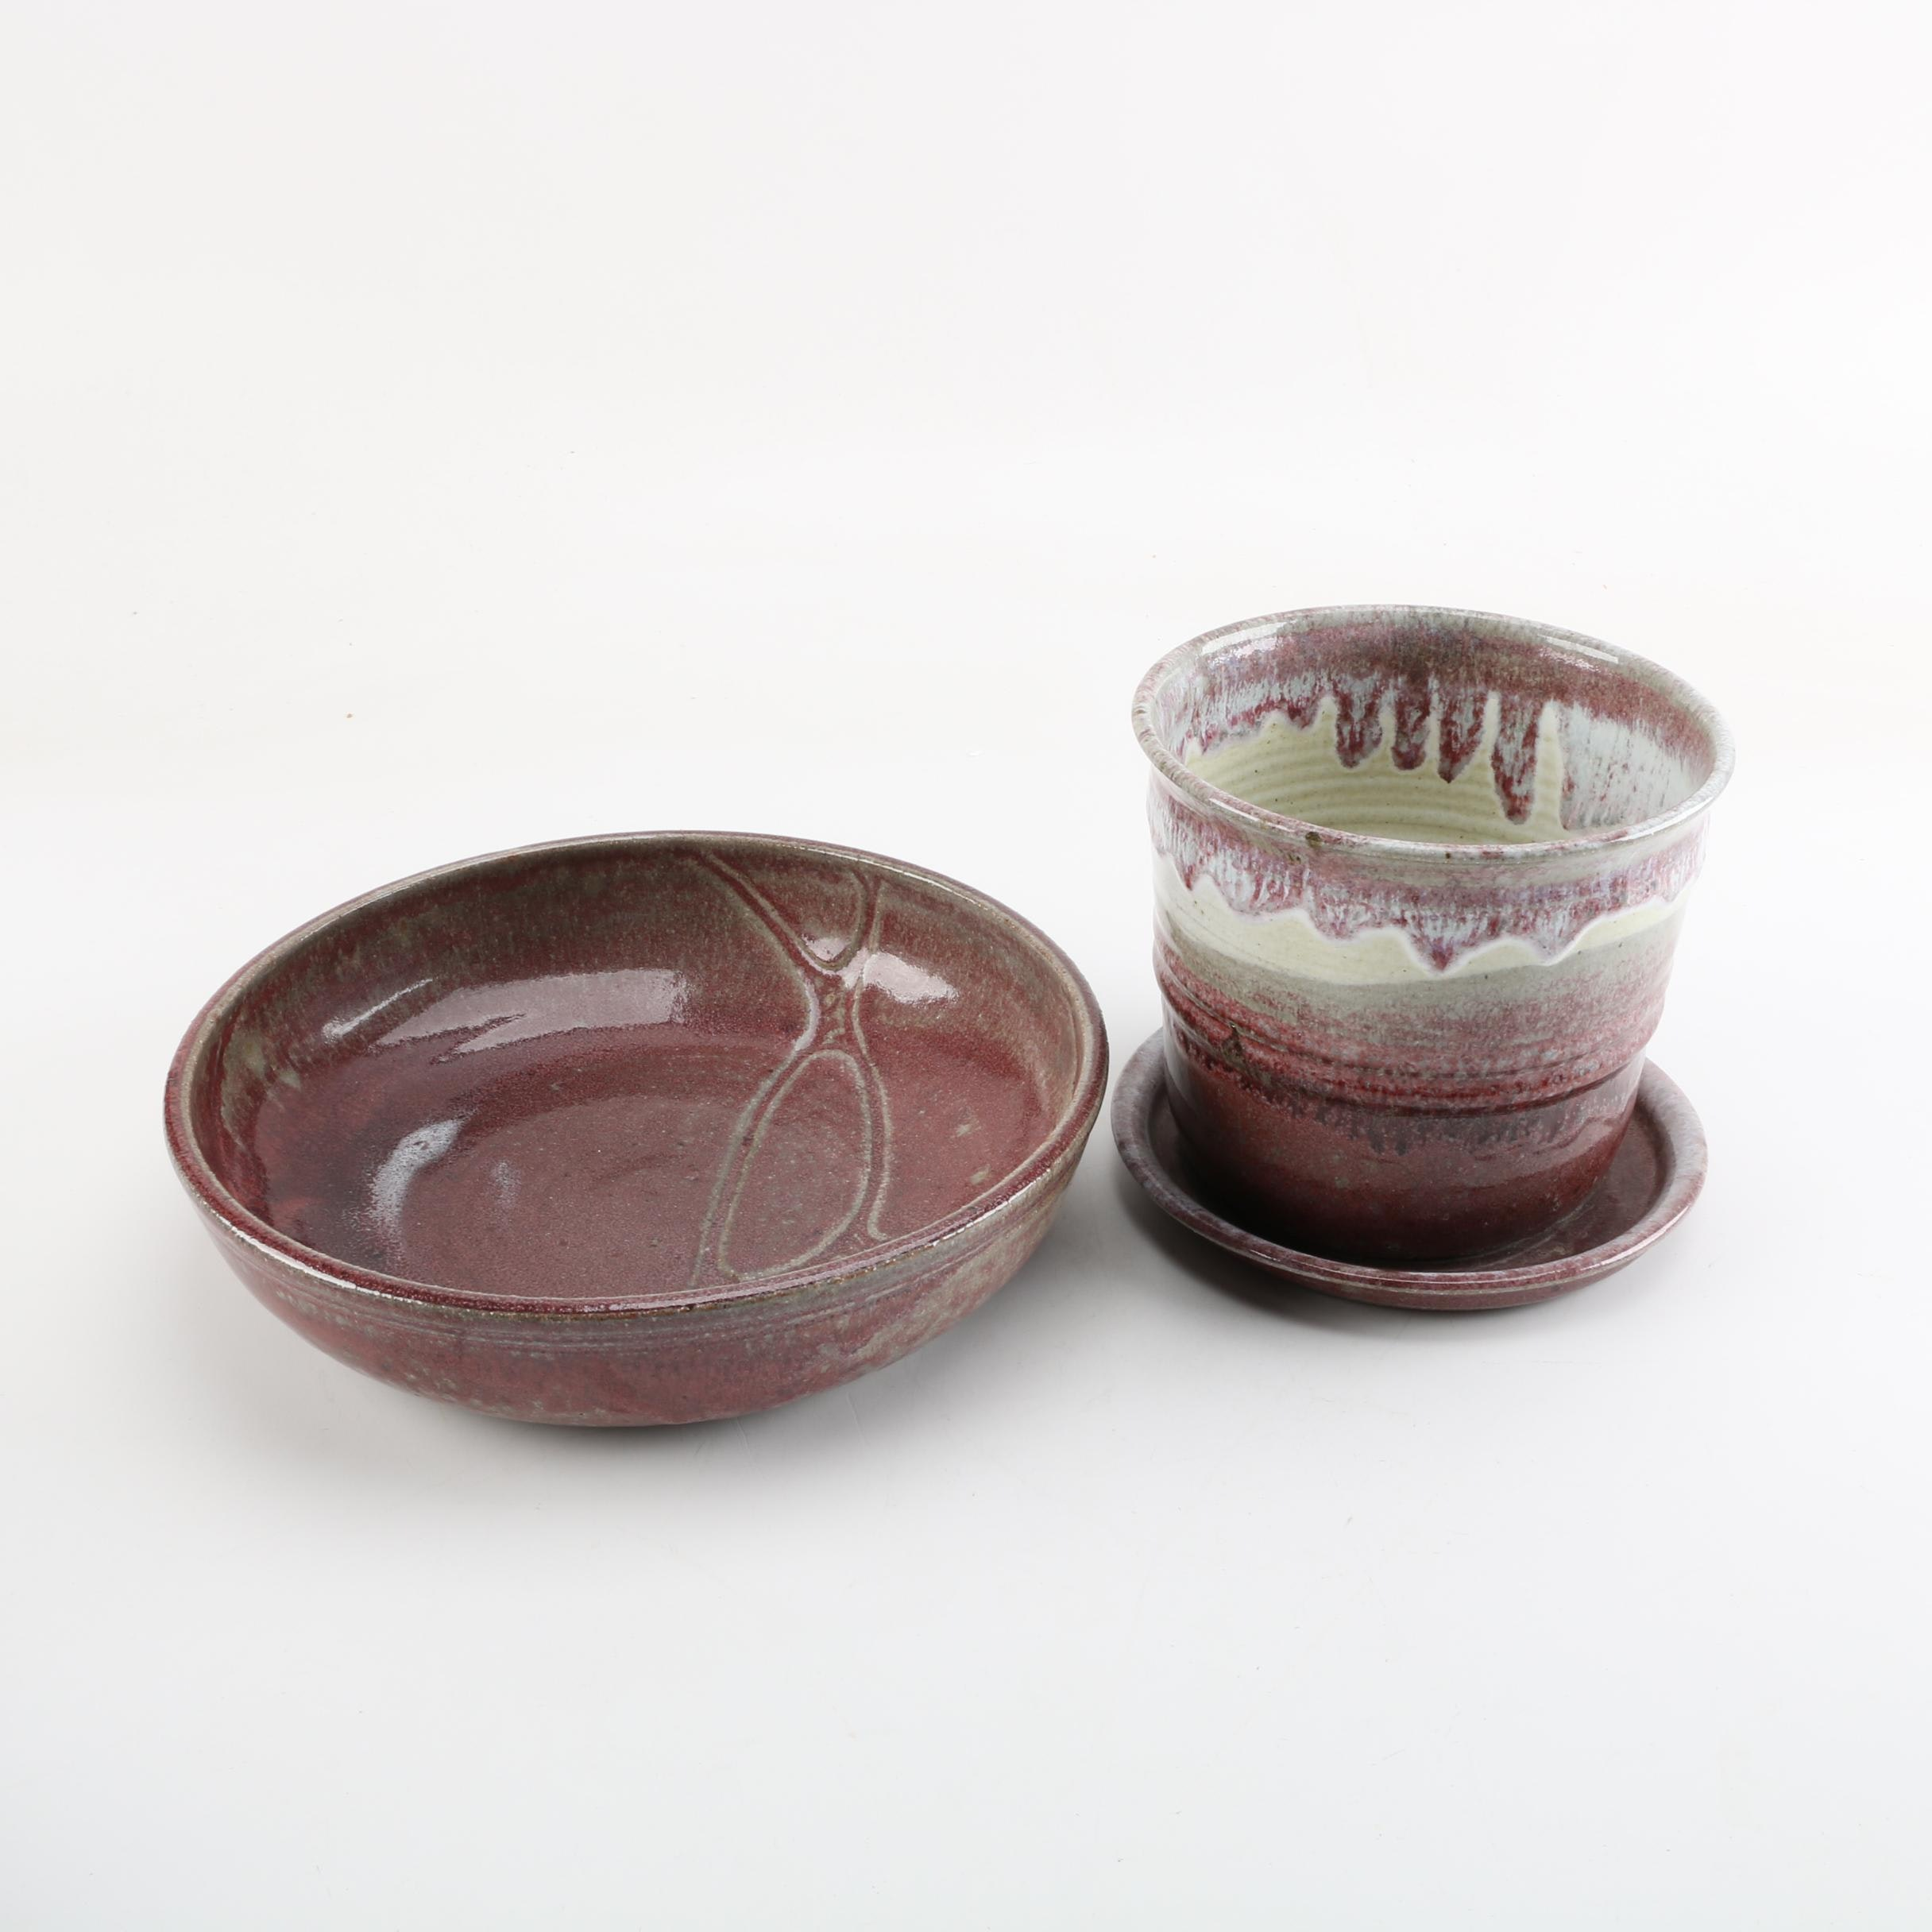 Signed Art Pottery Bowl and Planter